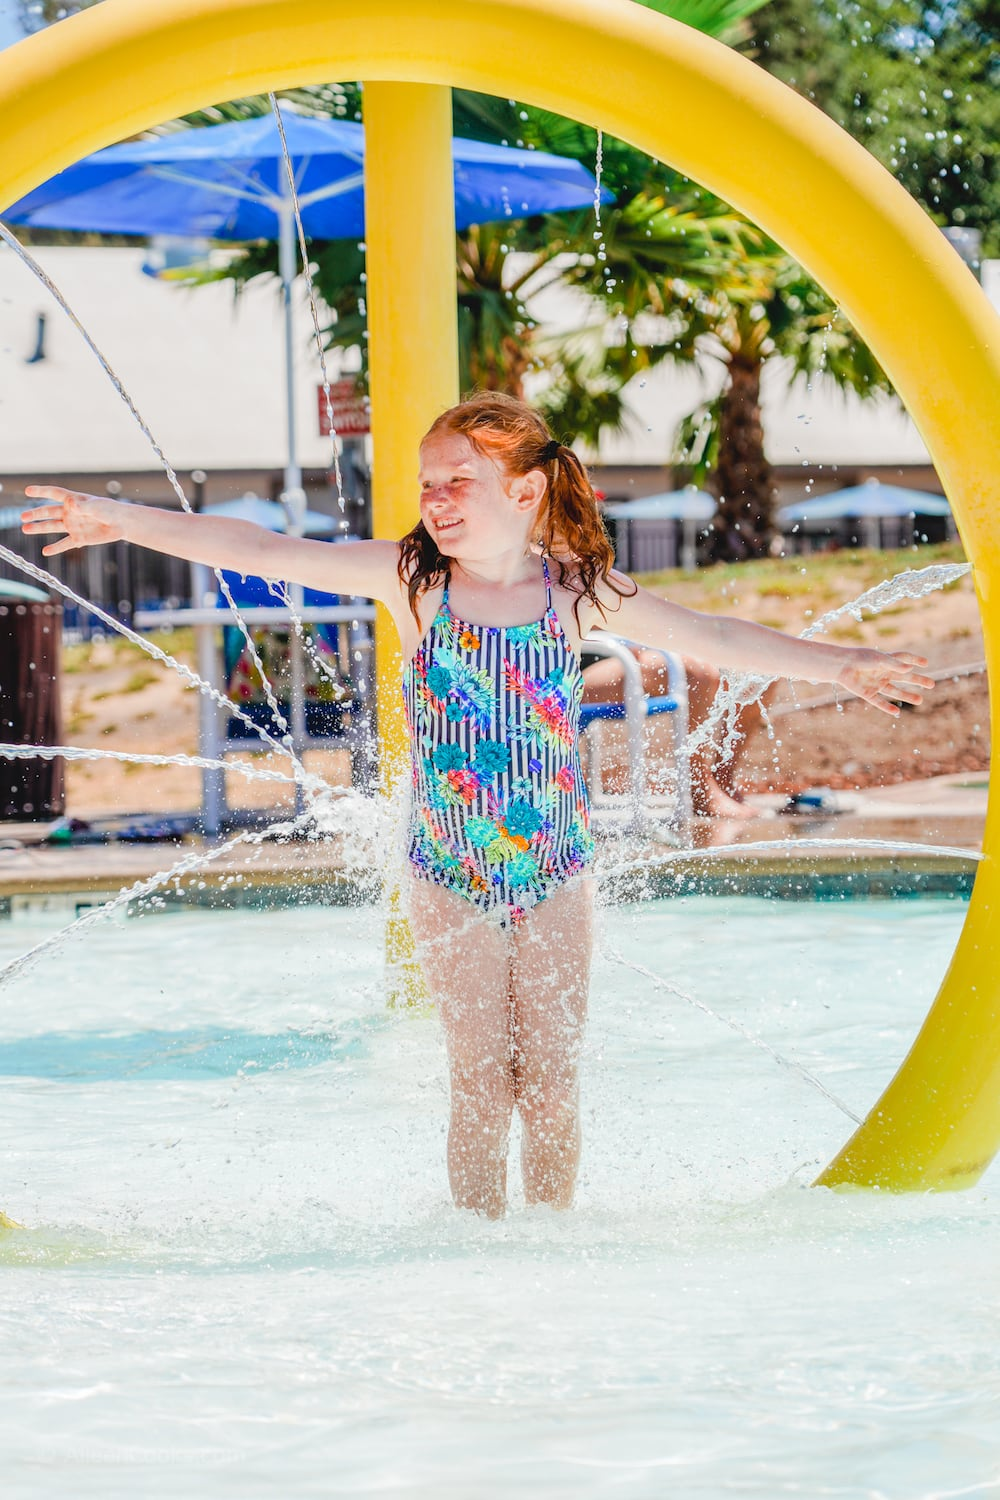 A girl standing inside of a spraying water feature in one of the pools at Tower Park.